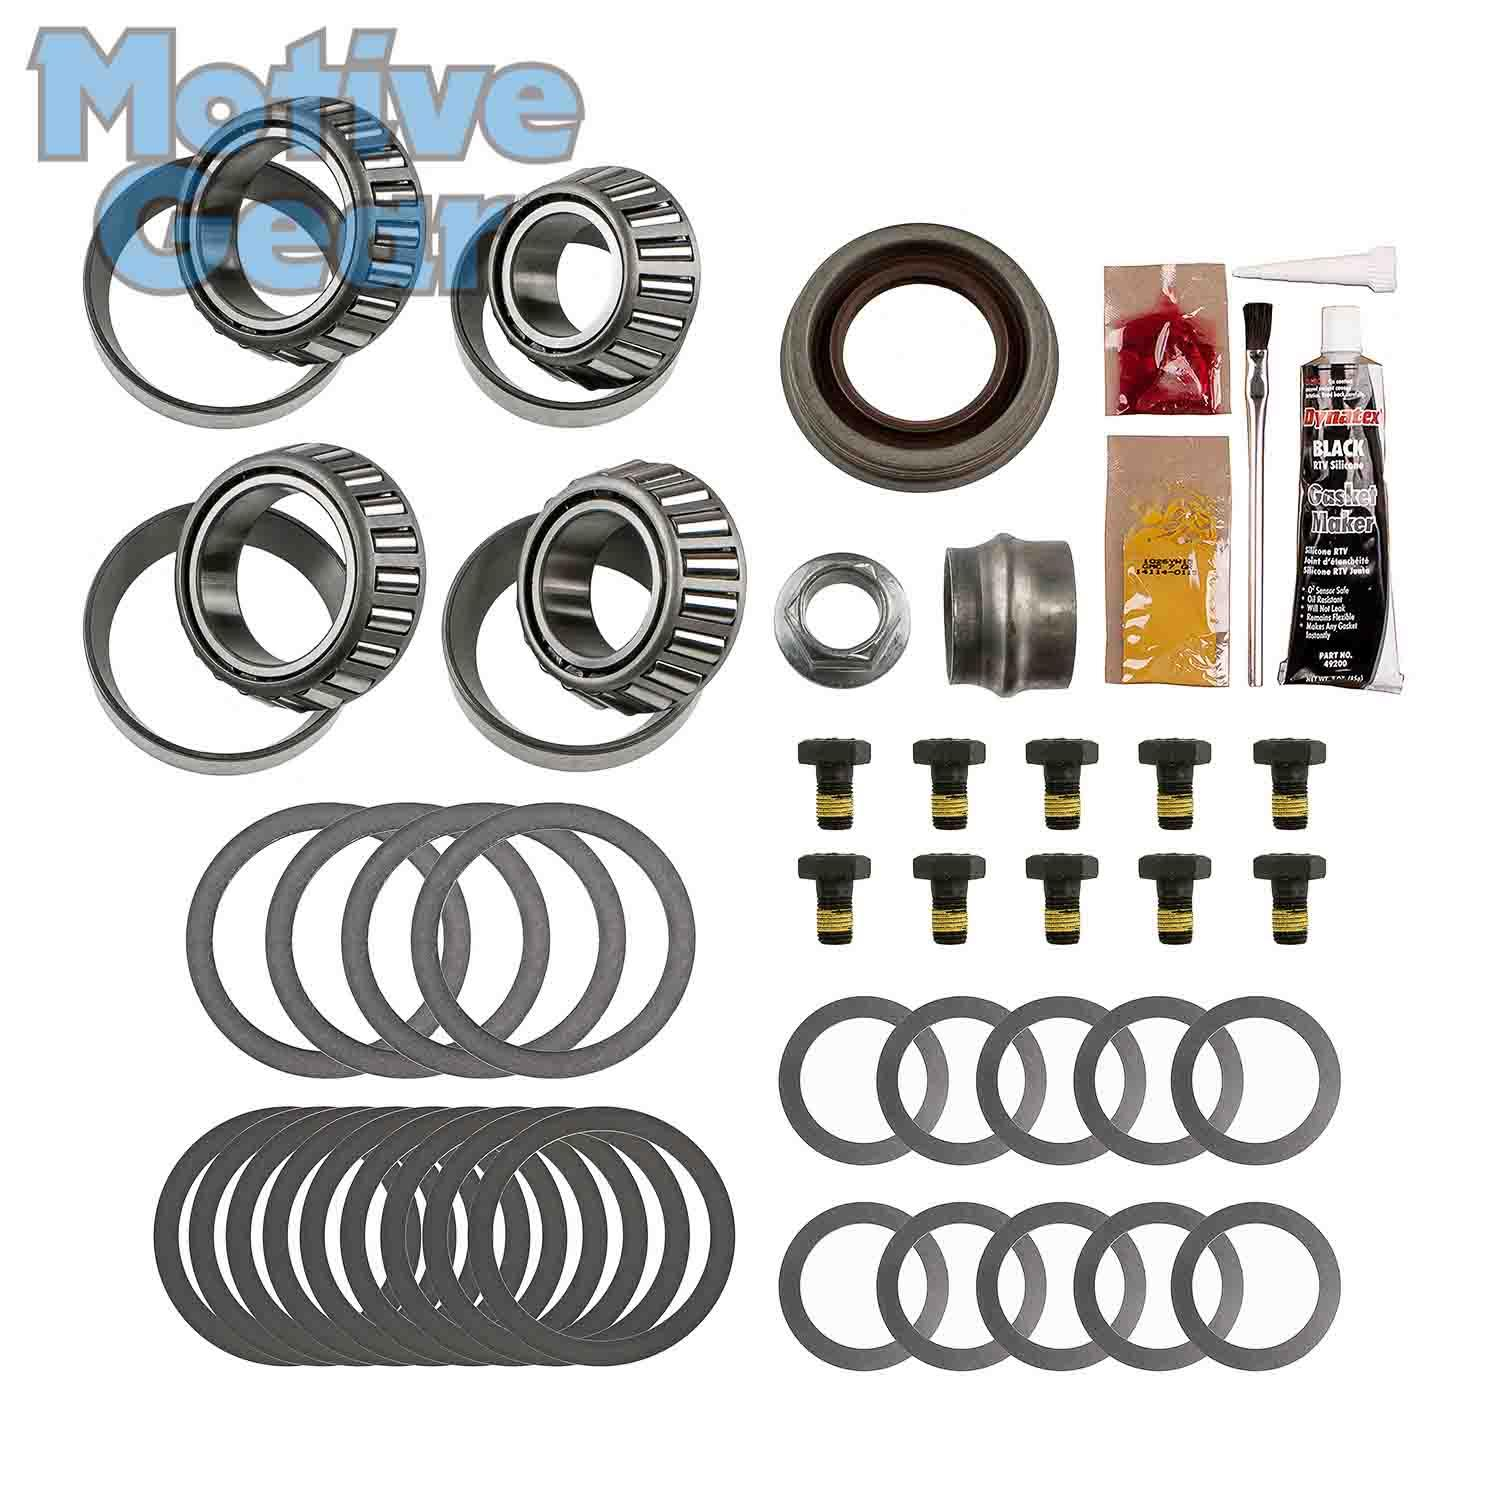 RA28RJKFMKT Motive Gear/Midwest Truck Differential Ring and Pinion